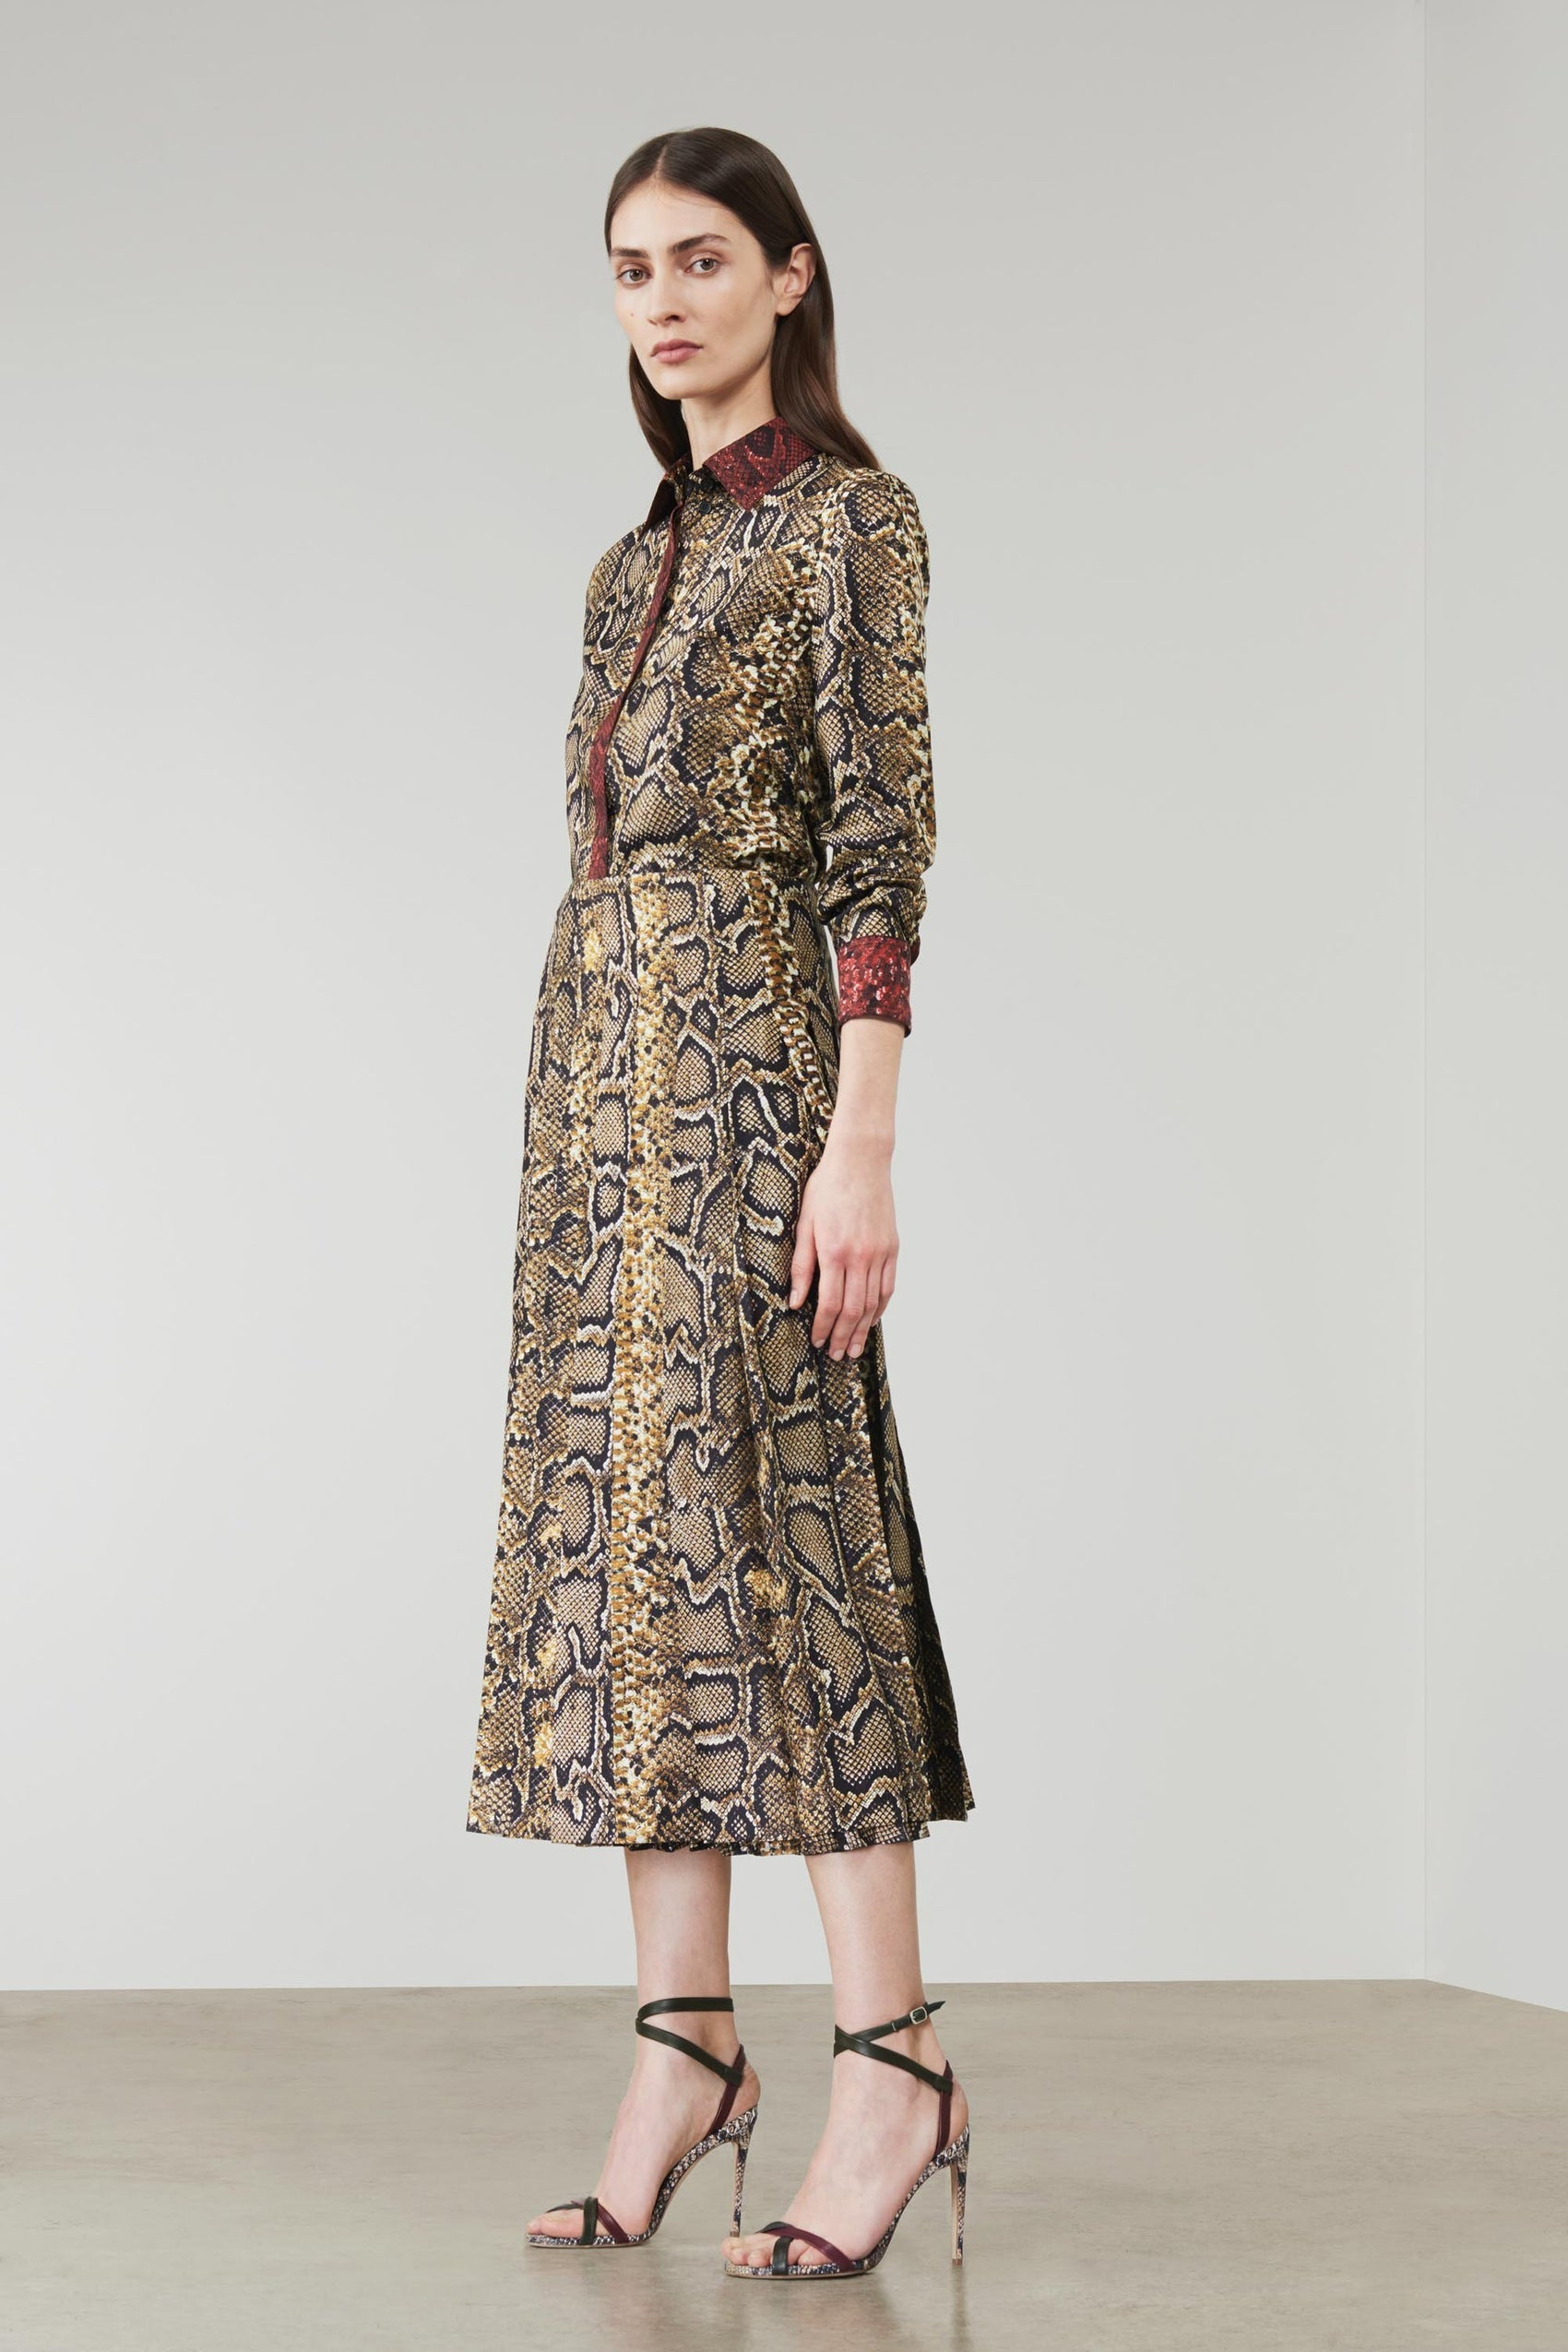 Snake print pleated skirt and blouse